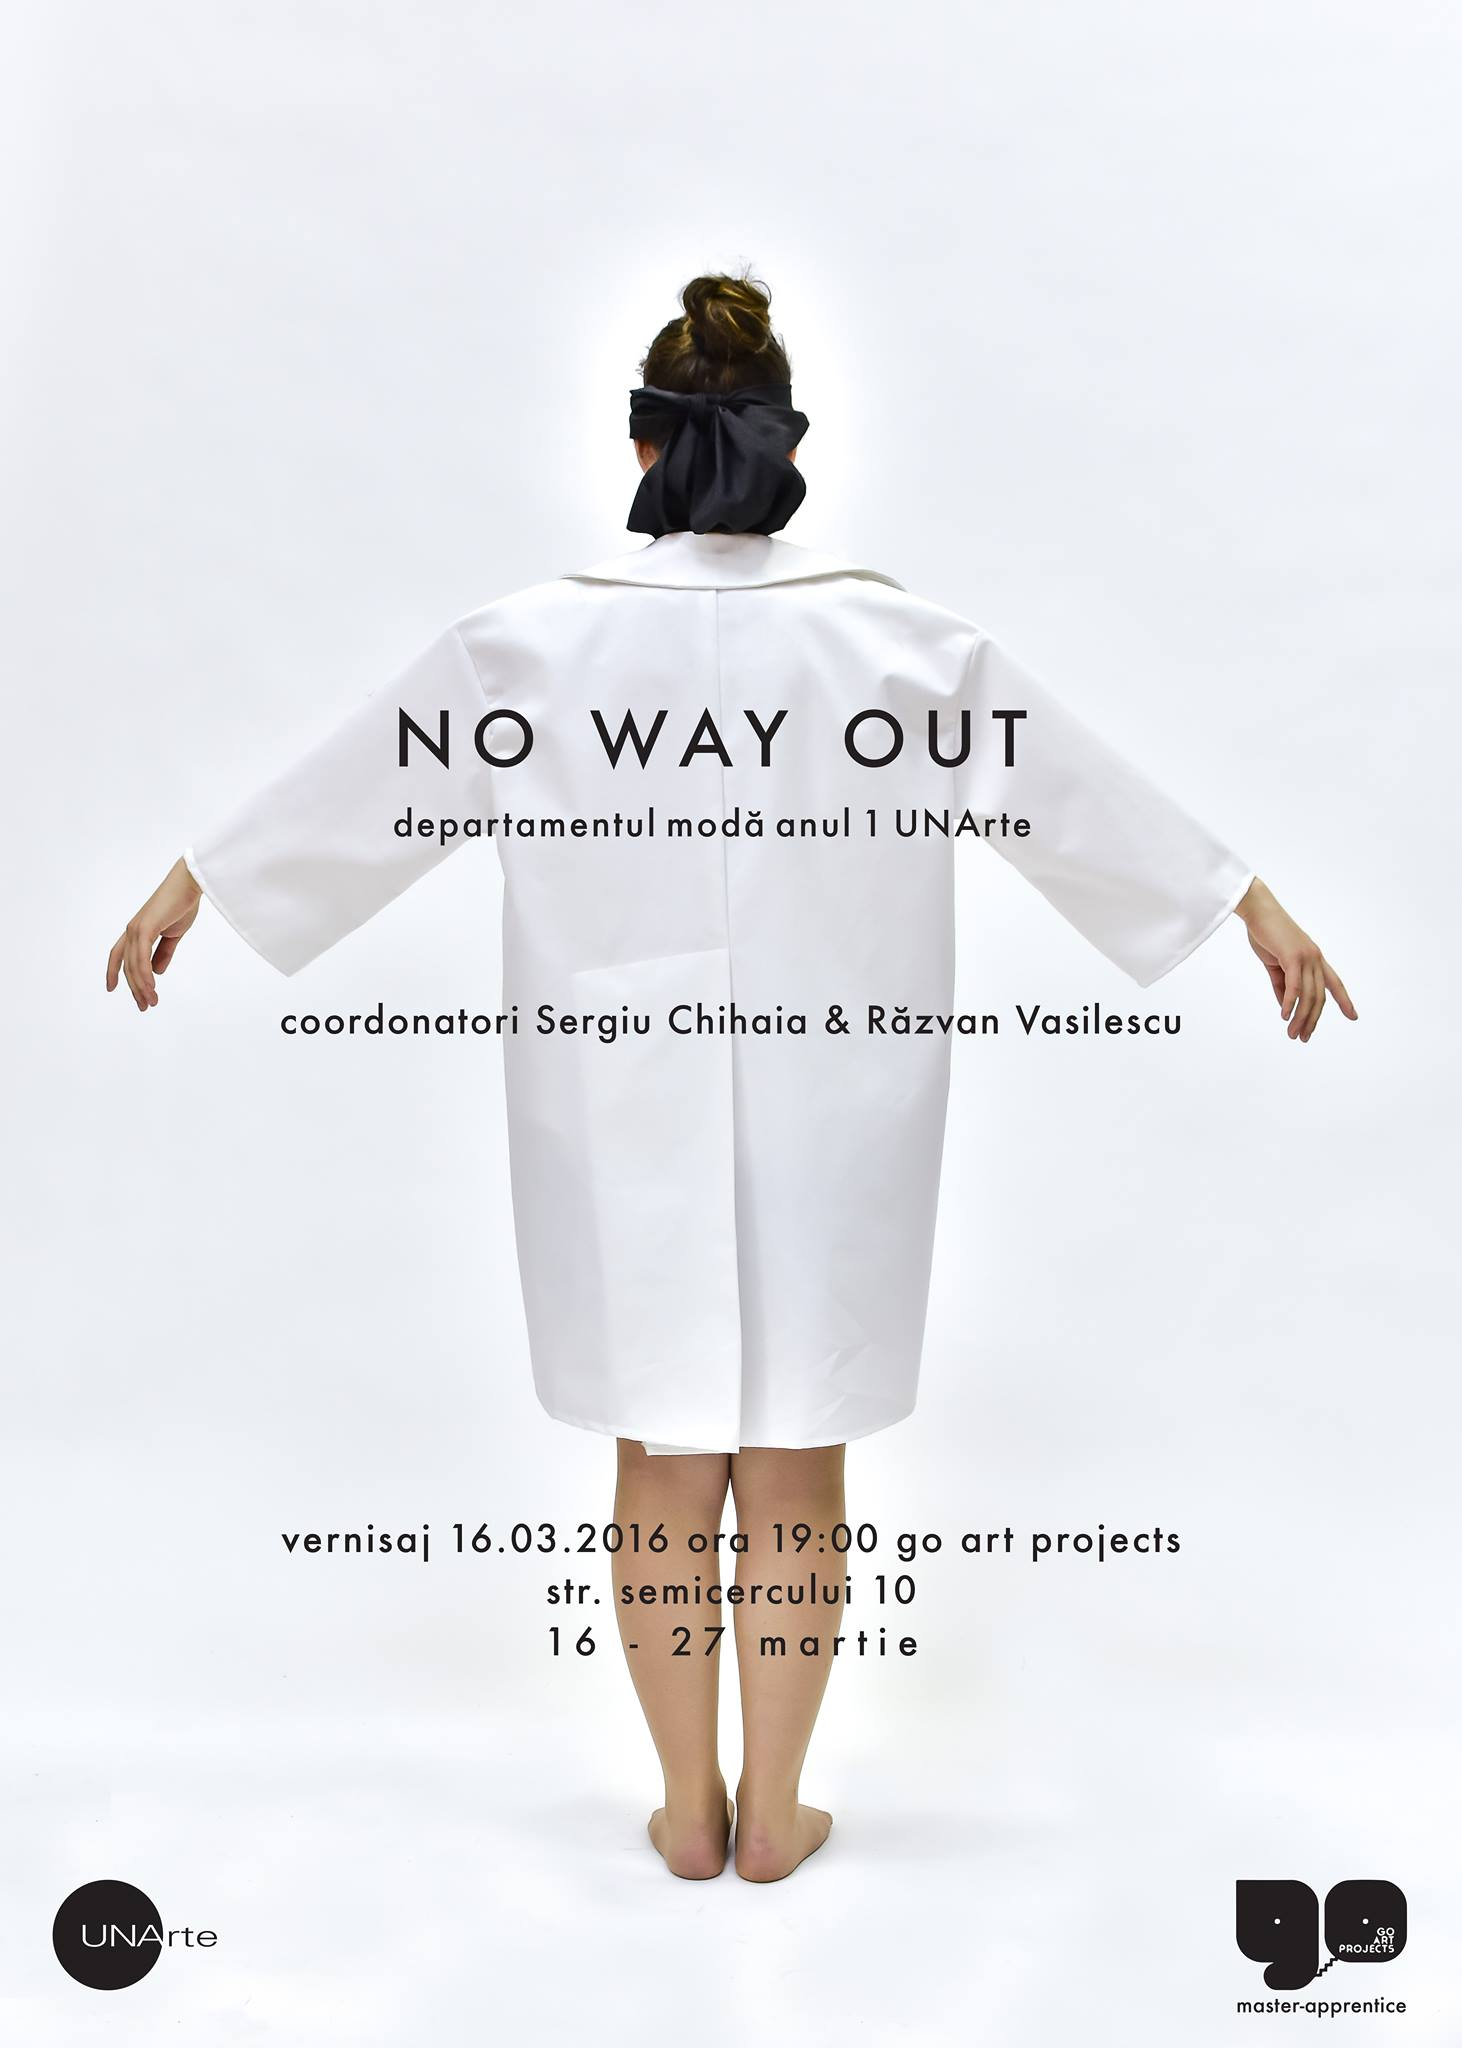 GO13 NO WAY OUT @ Go Art Projects 16.03.2016 7 pm